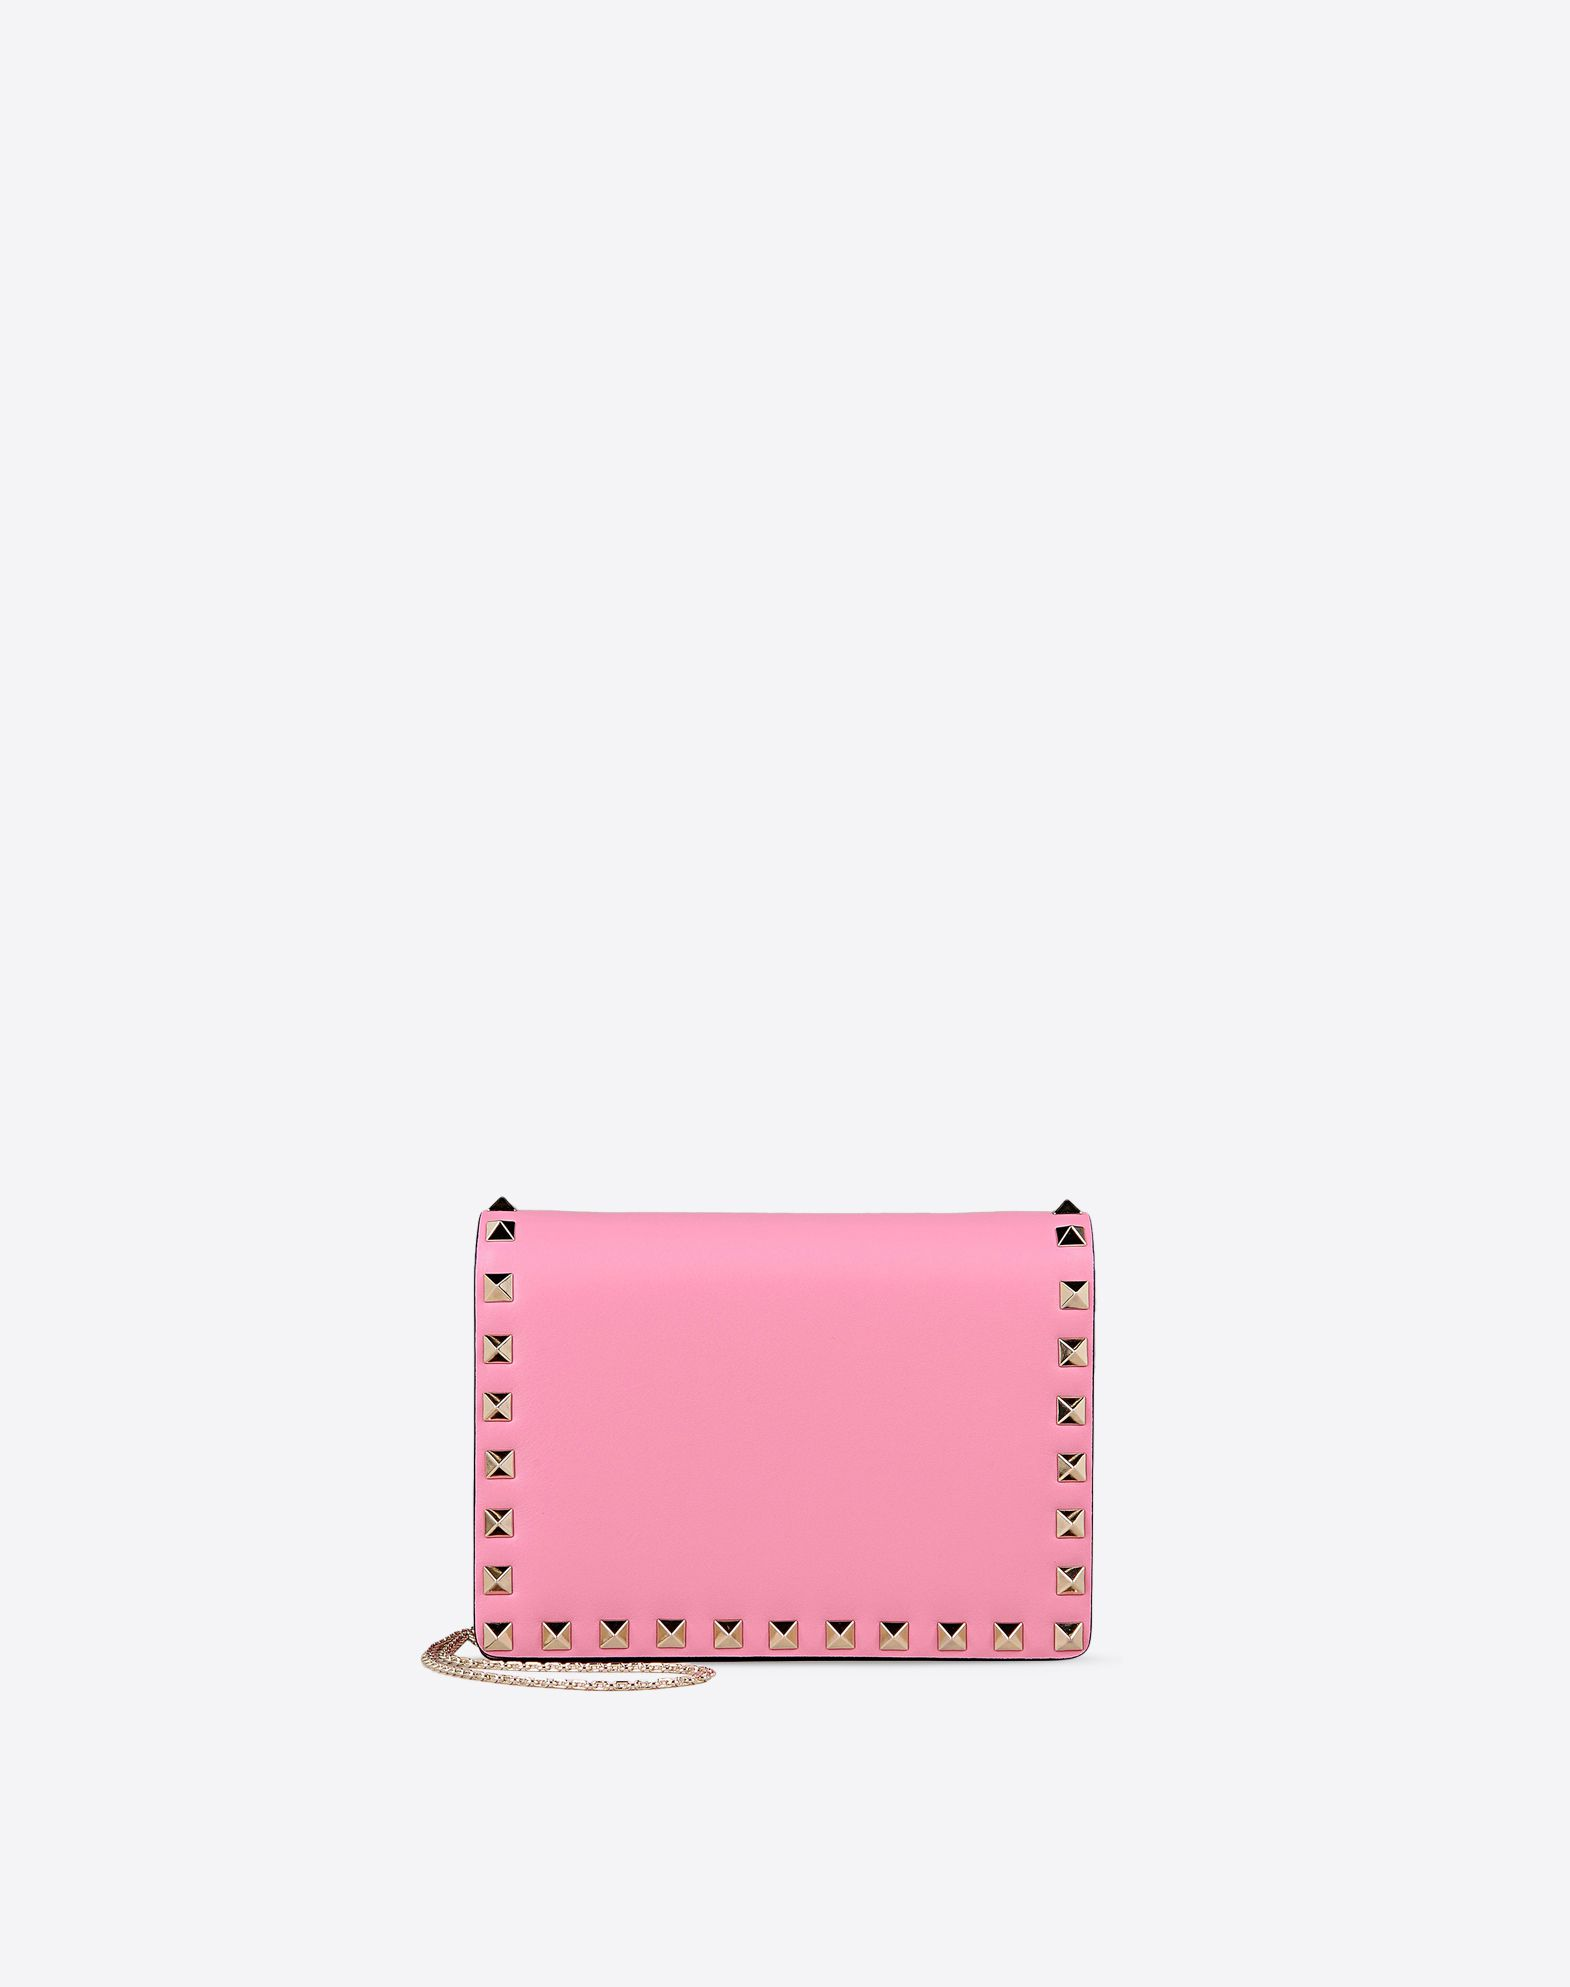 VALENTINO Logo detail Metal Applications Solid color Internal compartments Magnetic closure Metallic straps  46394119fh